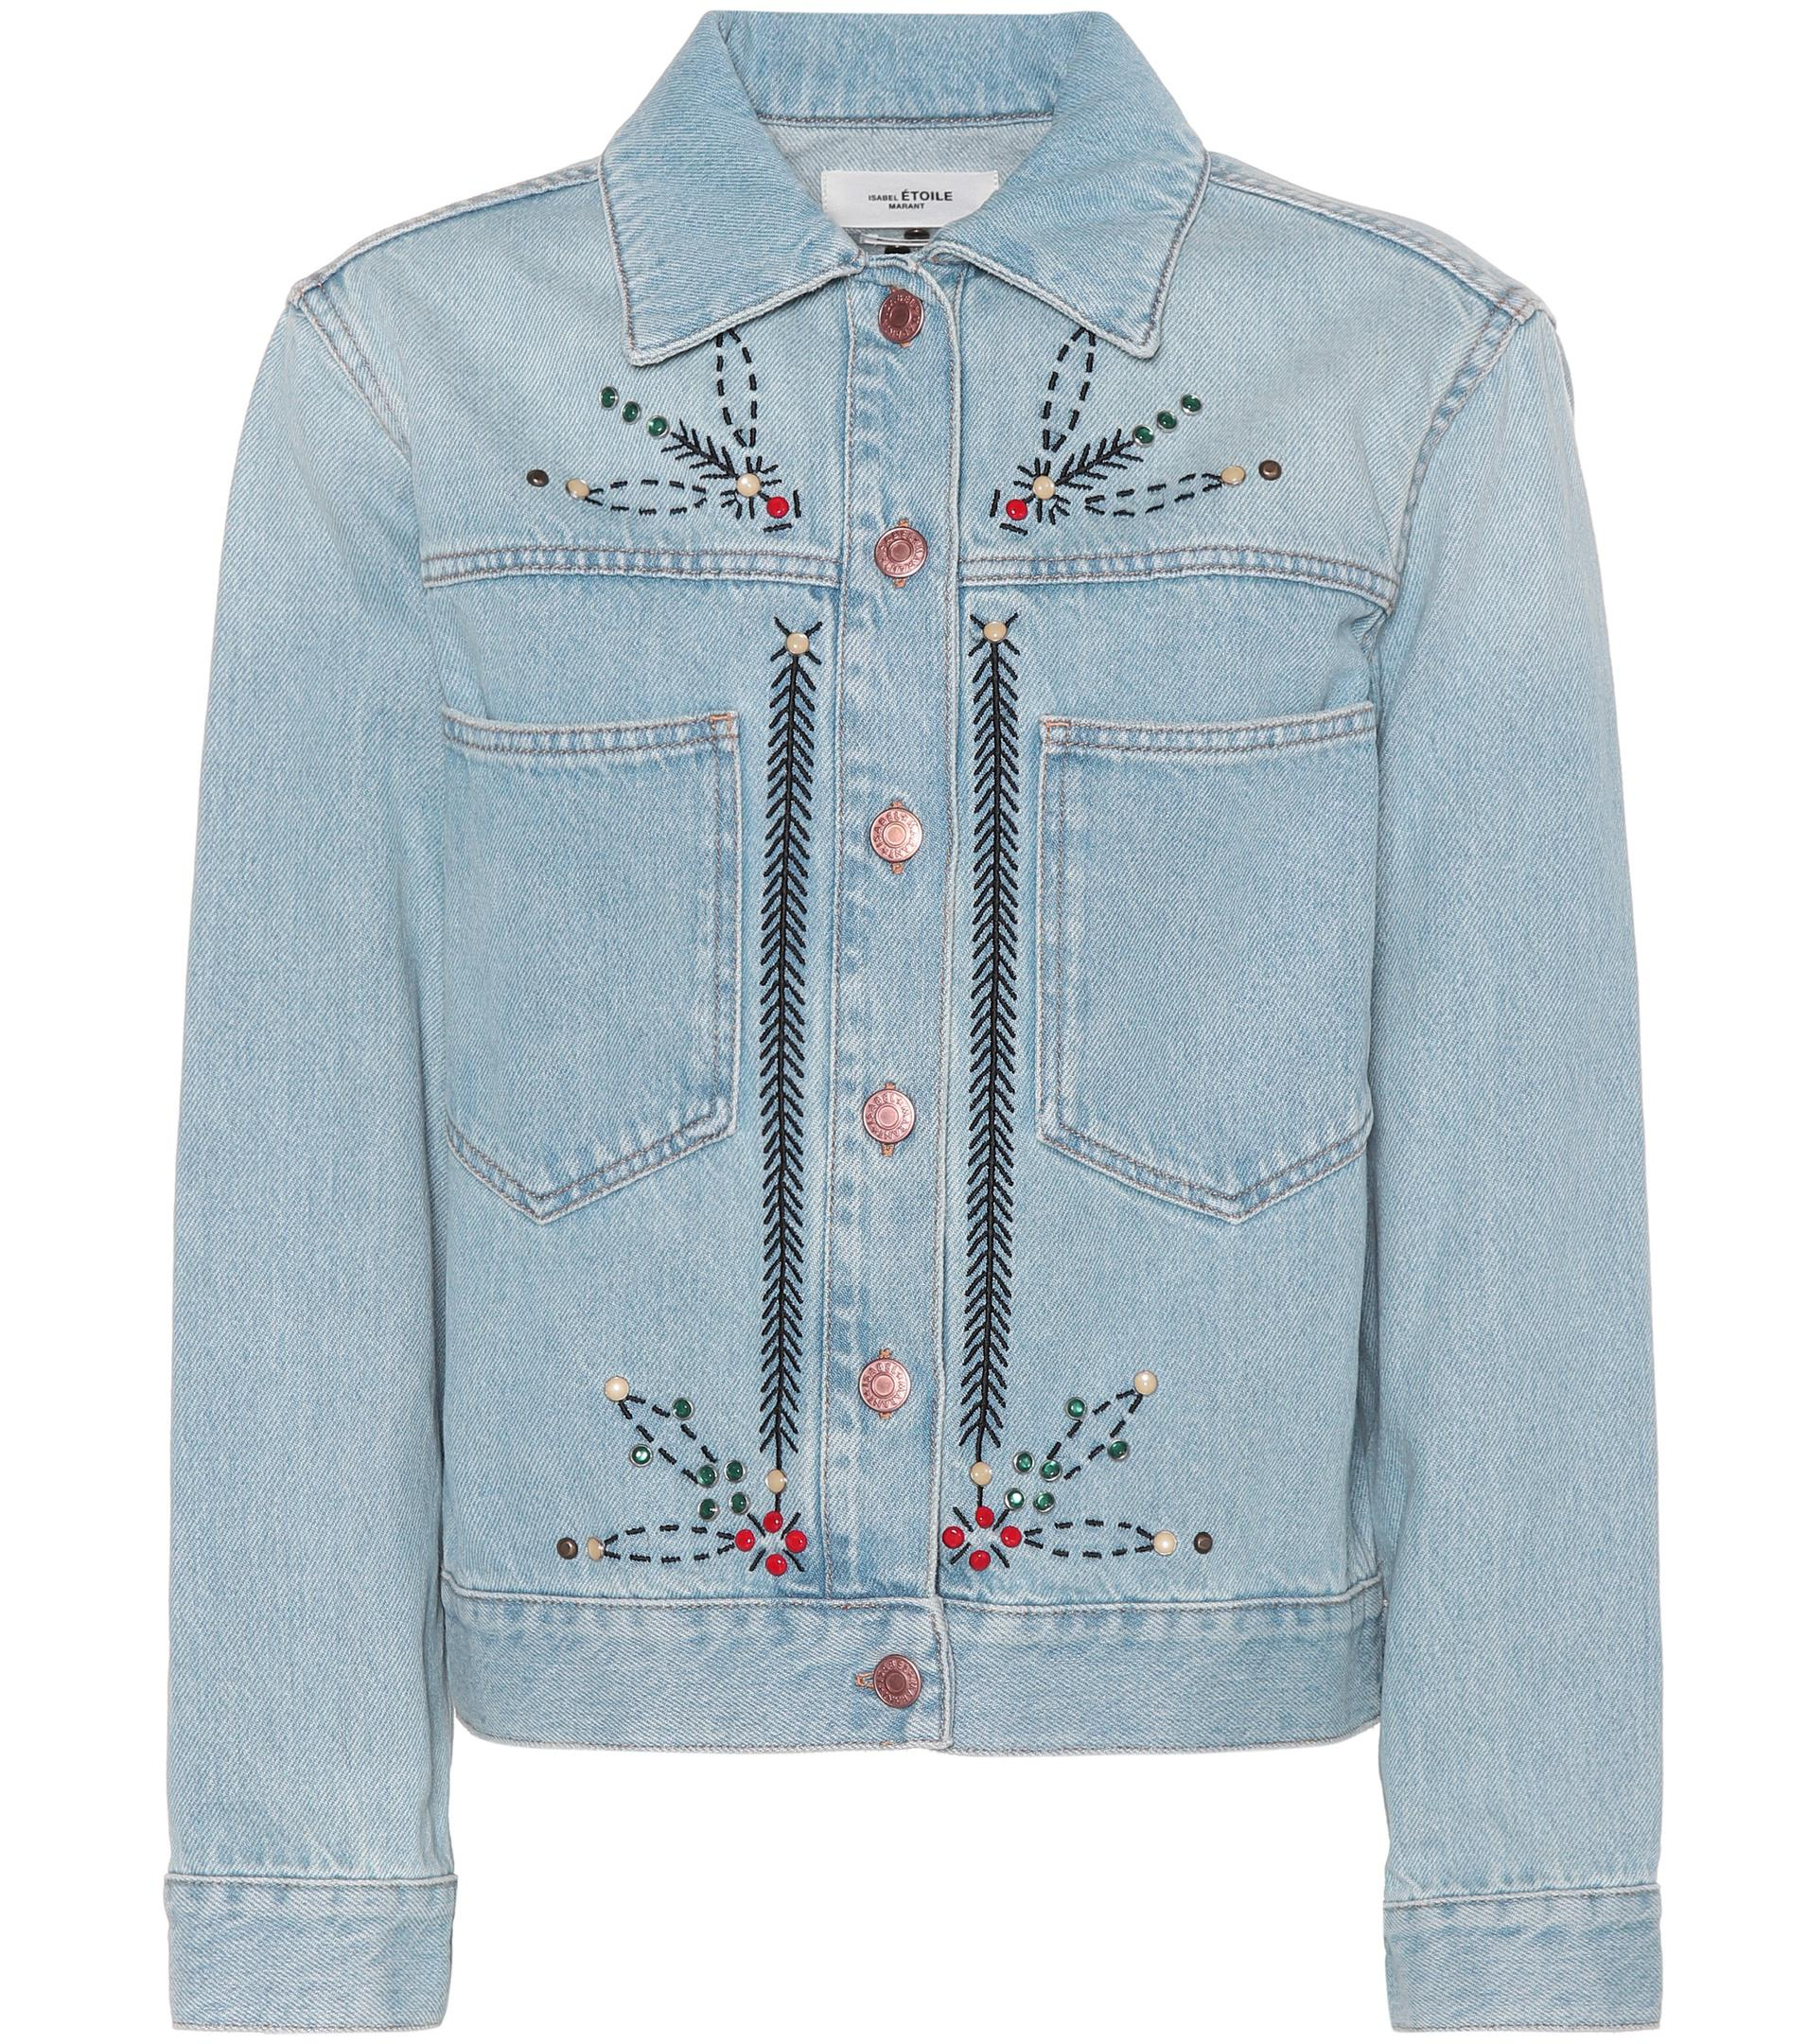 41aafff254 Étoile Isabel Marant Cabella Embellished Denim Jacket in Blue - Lyst